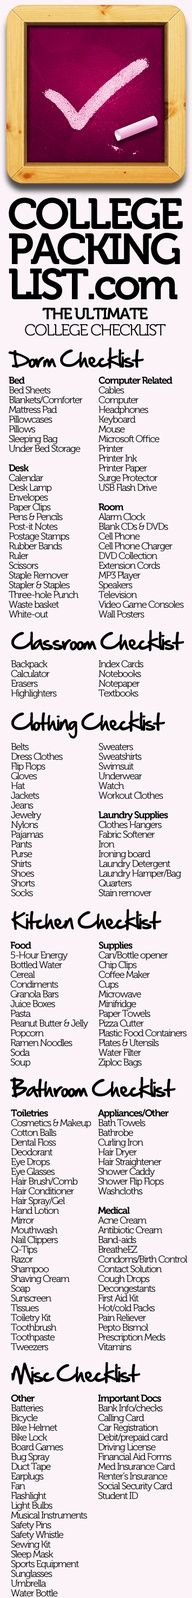 Great list and infographic from collegepackinglist.com. Thx for sharing Wake Forest University Stores!